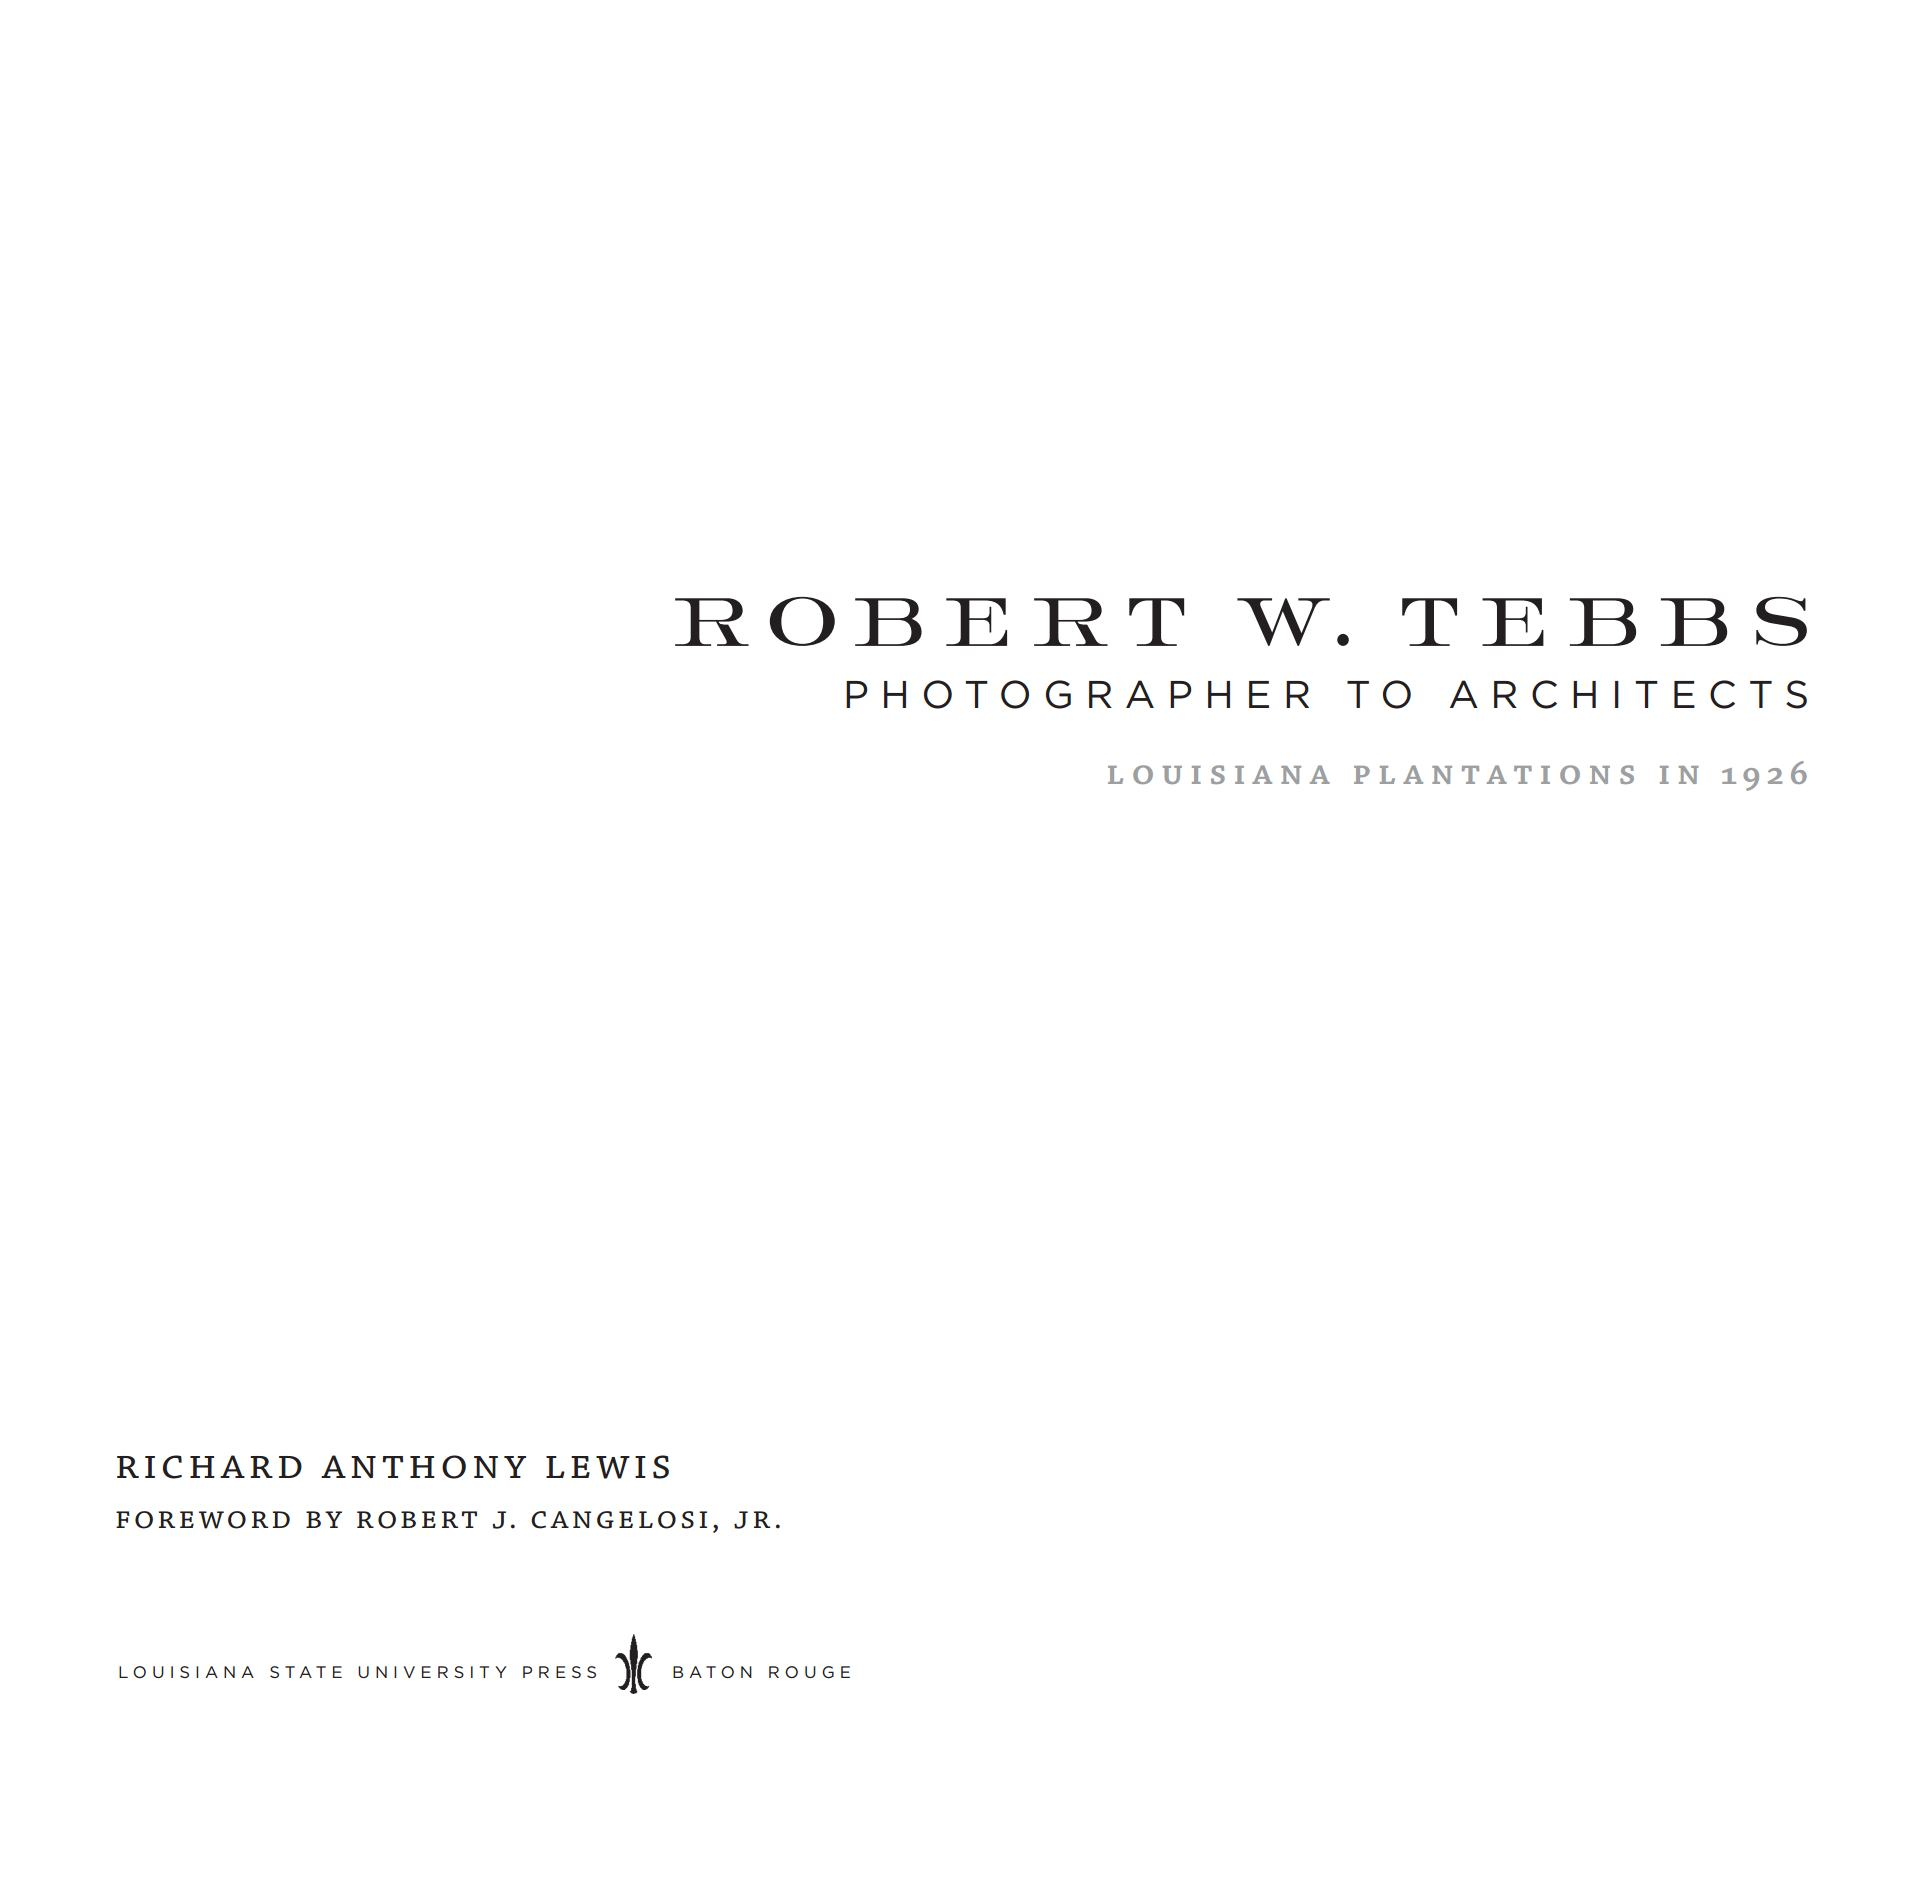 Robert W. Tebbs, Photographer to Architects: Louisiana Plantations in 1926 / Richard Anthony Lewis ; foreword by Robert J. Cangelosi, Jr. — Baton Rouge, Louisiana : Louisiana State University Press, 2011